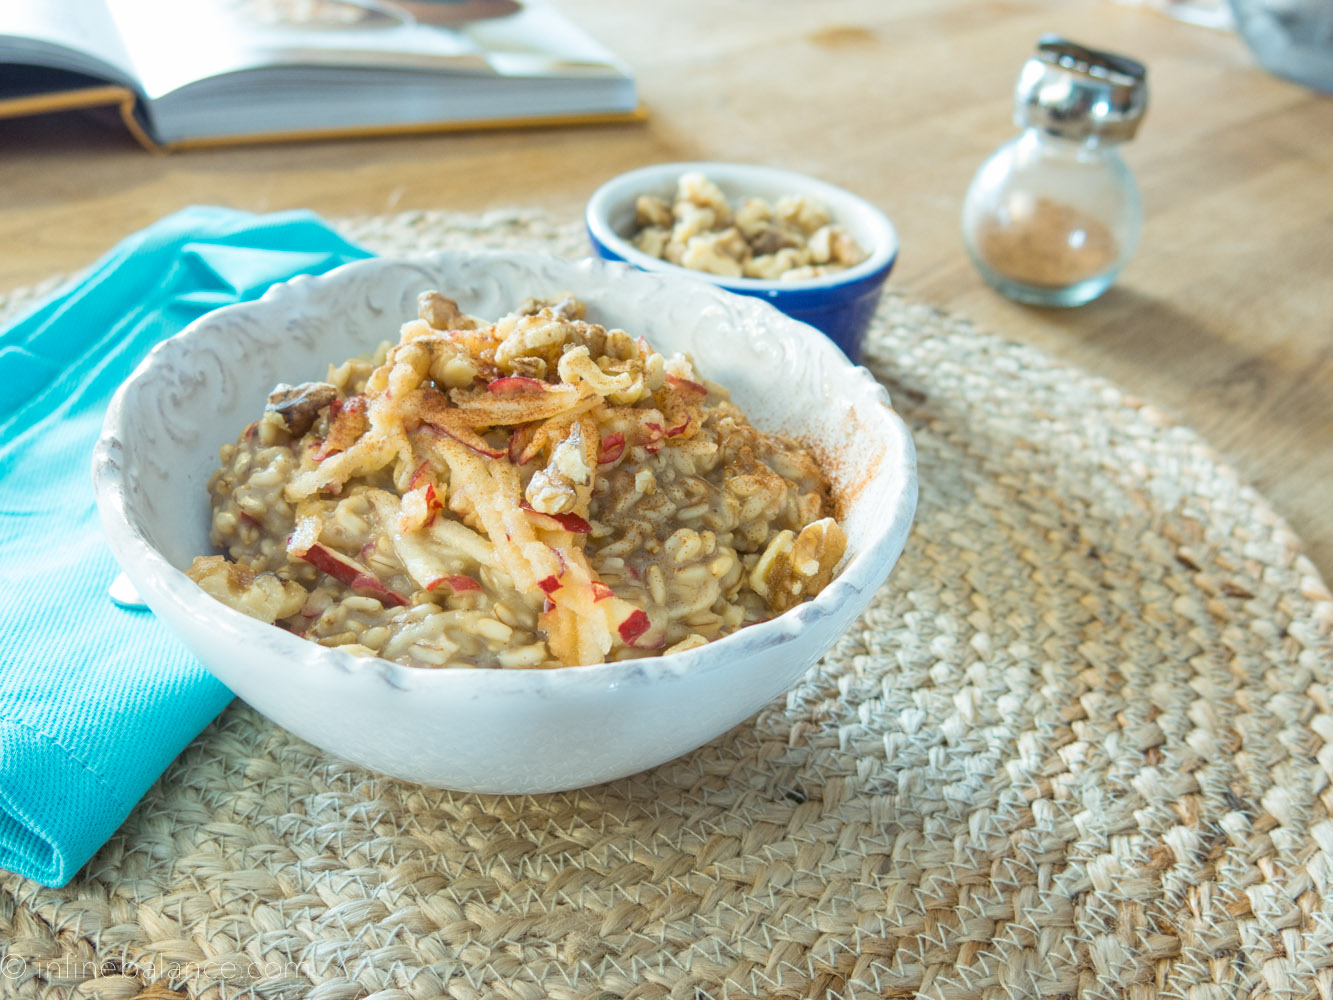 cooked whole oat groats with apples and cinnamon in a white bowl